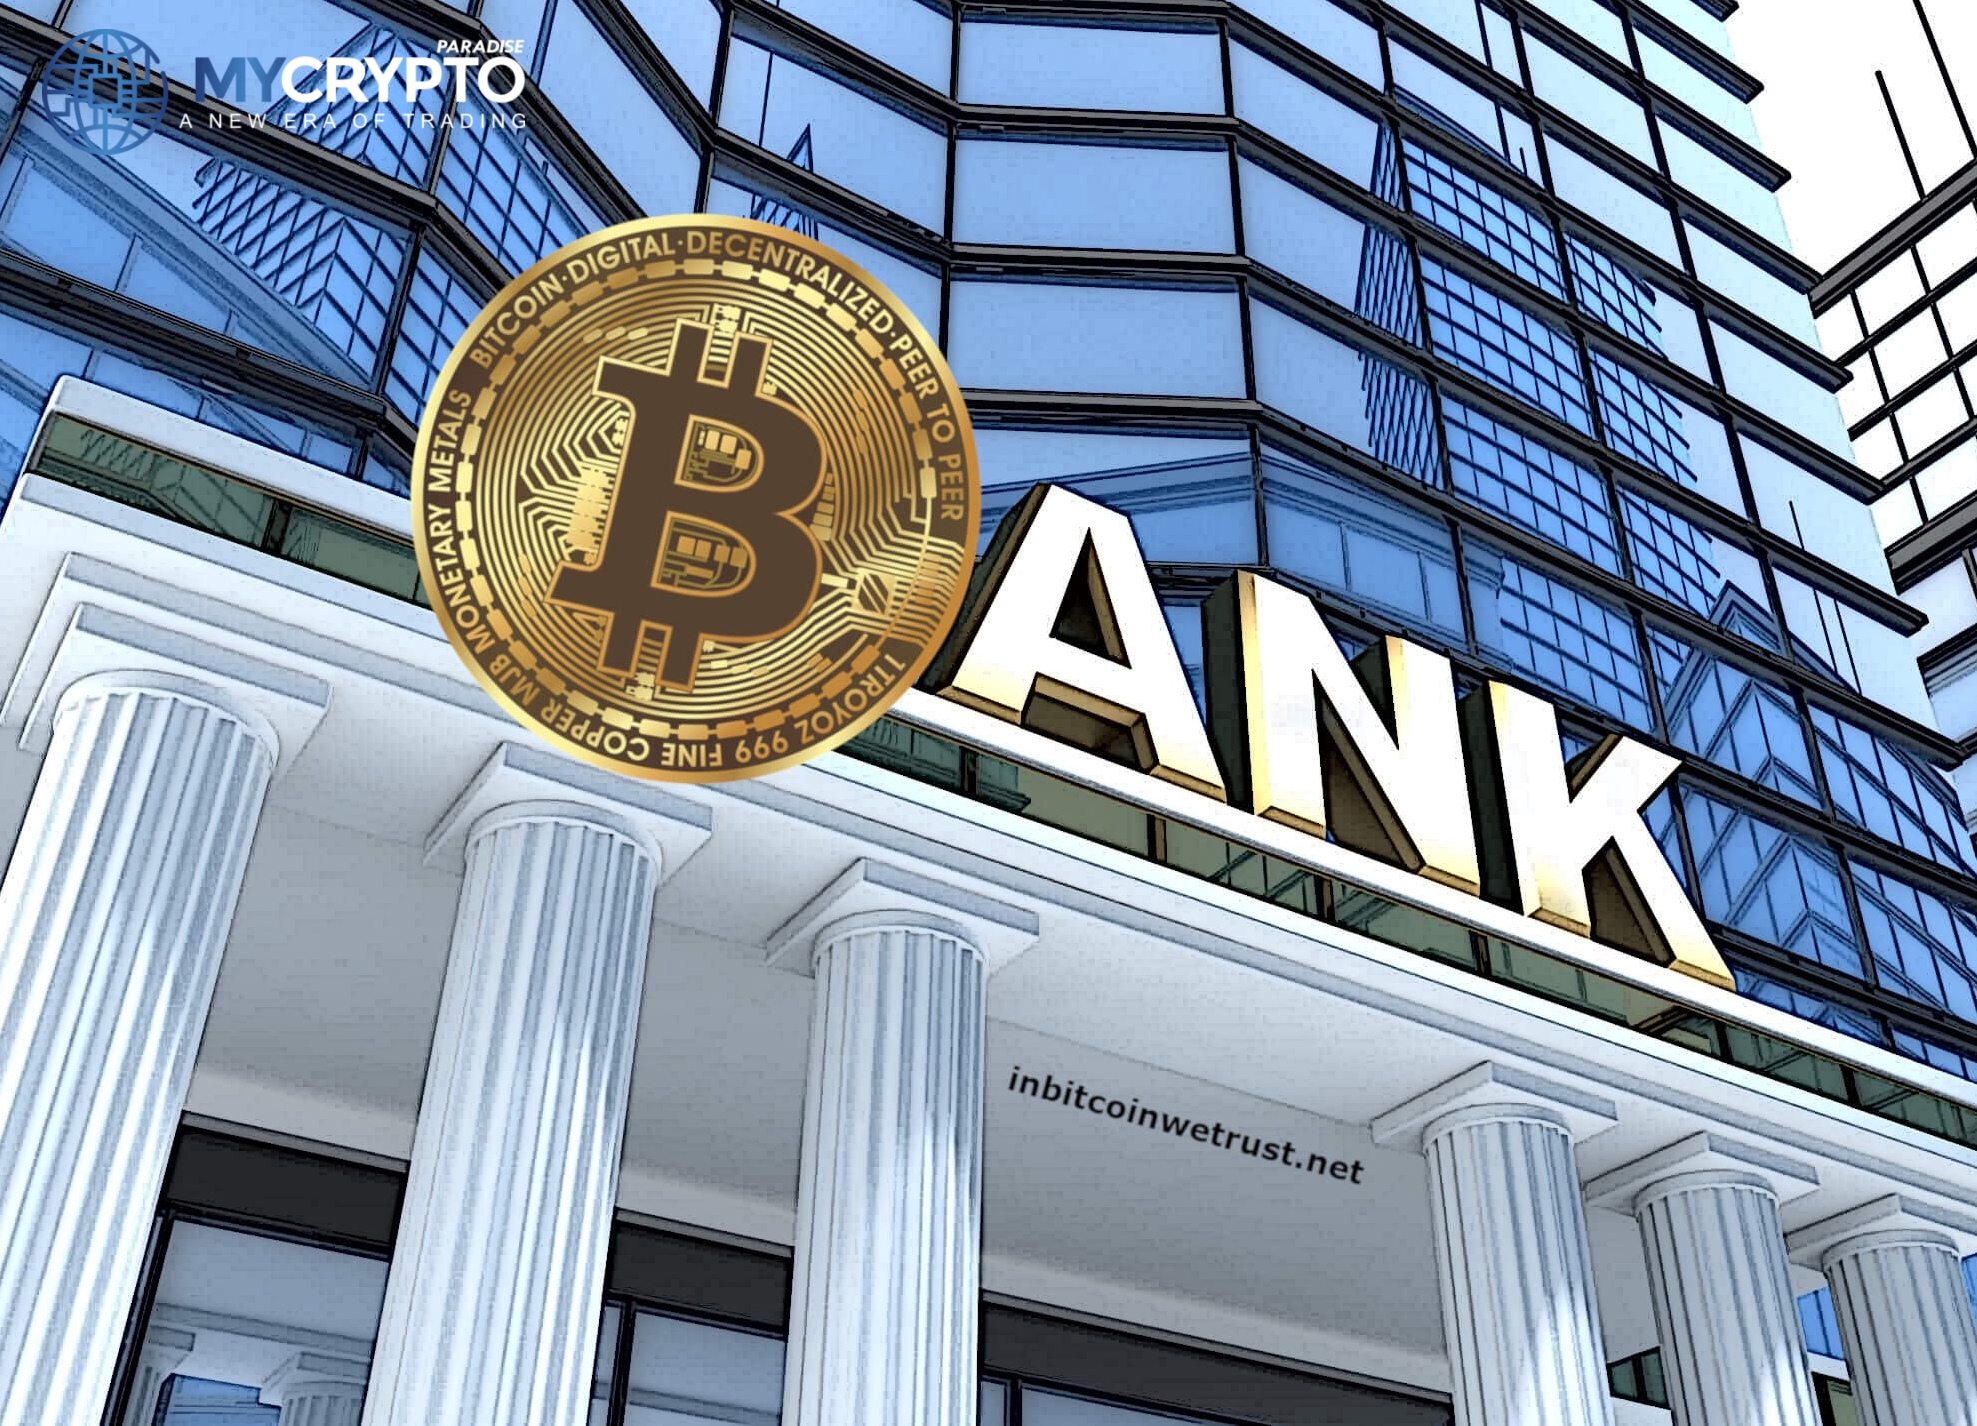 Several U.S. Banks Now allow Holding and Trading Bitcoin